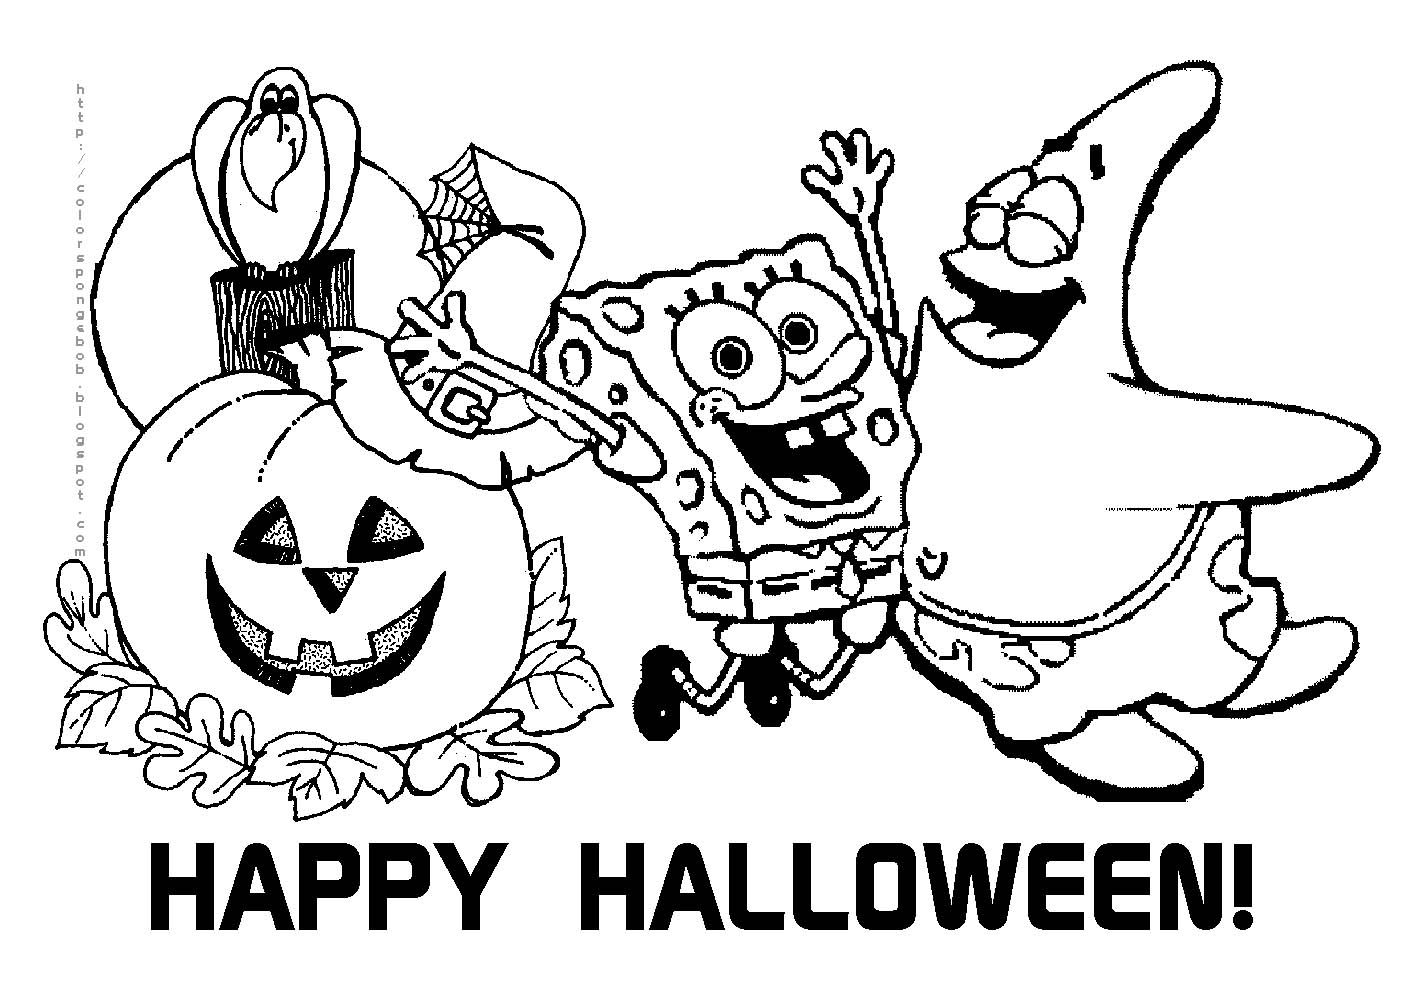 Uncategorized Coloring Pages Sponge Bob printable coloring pages for spongebob squarepants murderthestout free calendar sheet spongebob